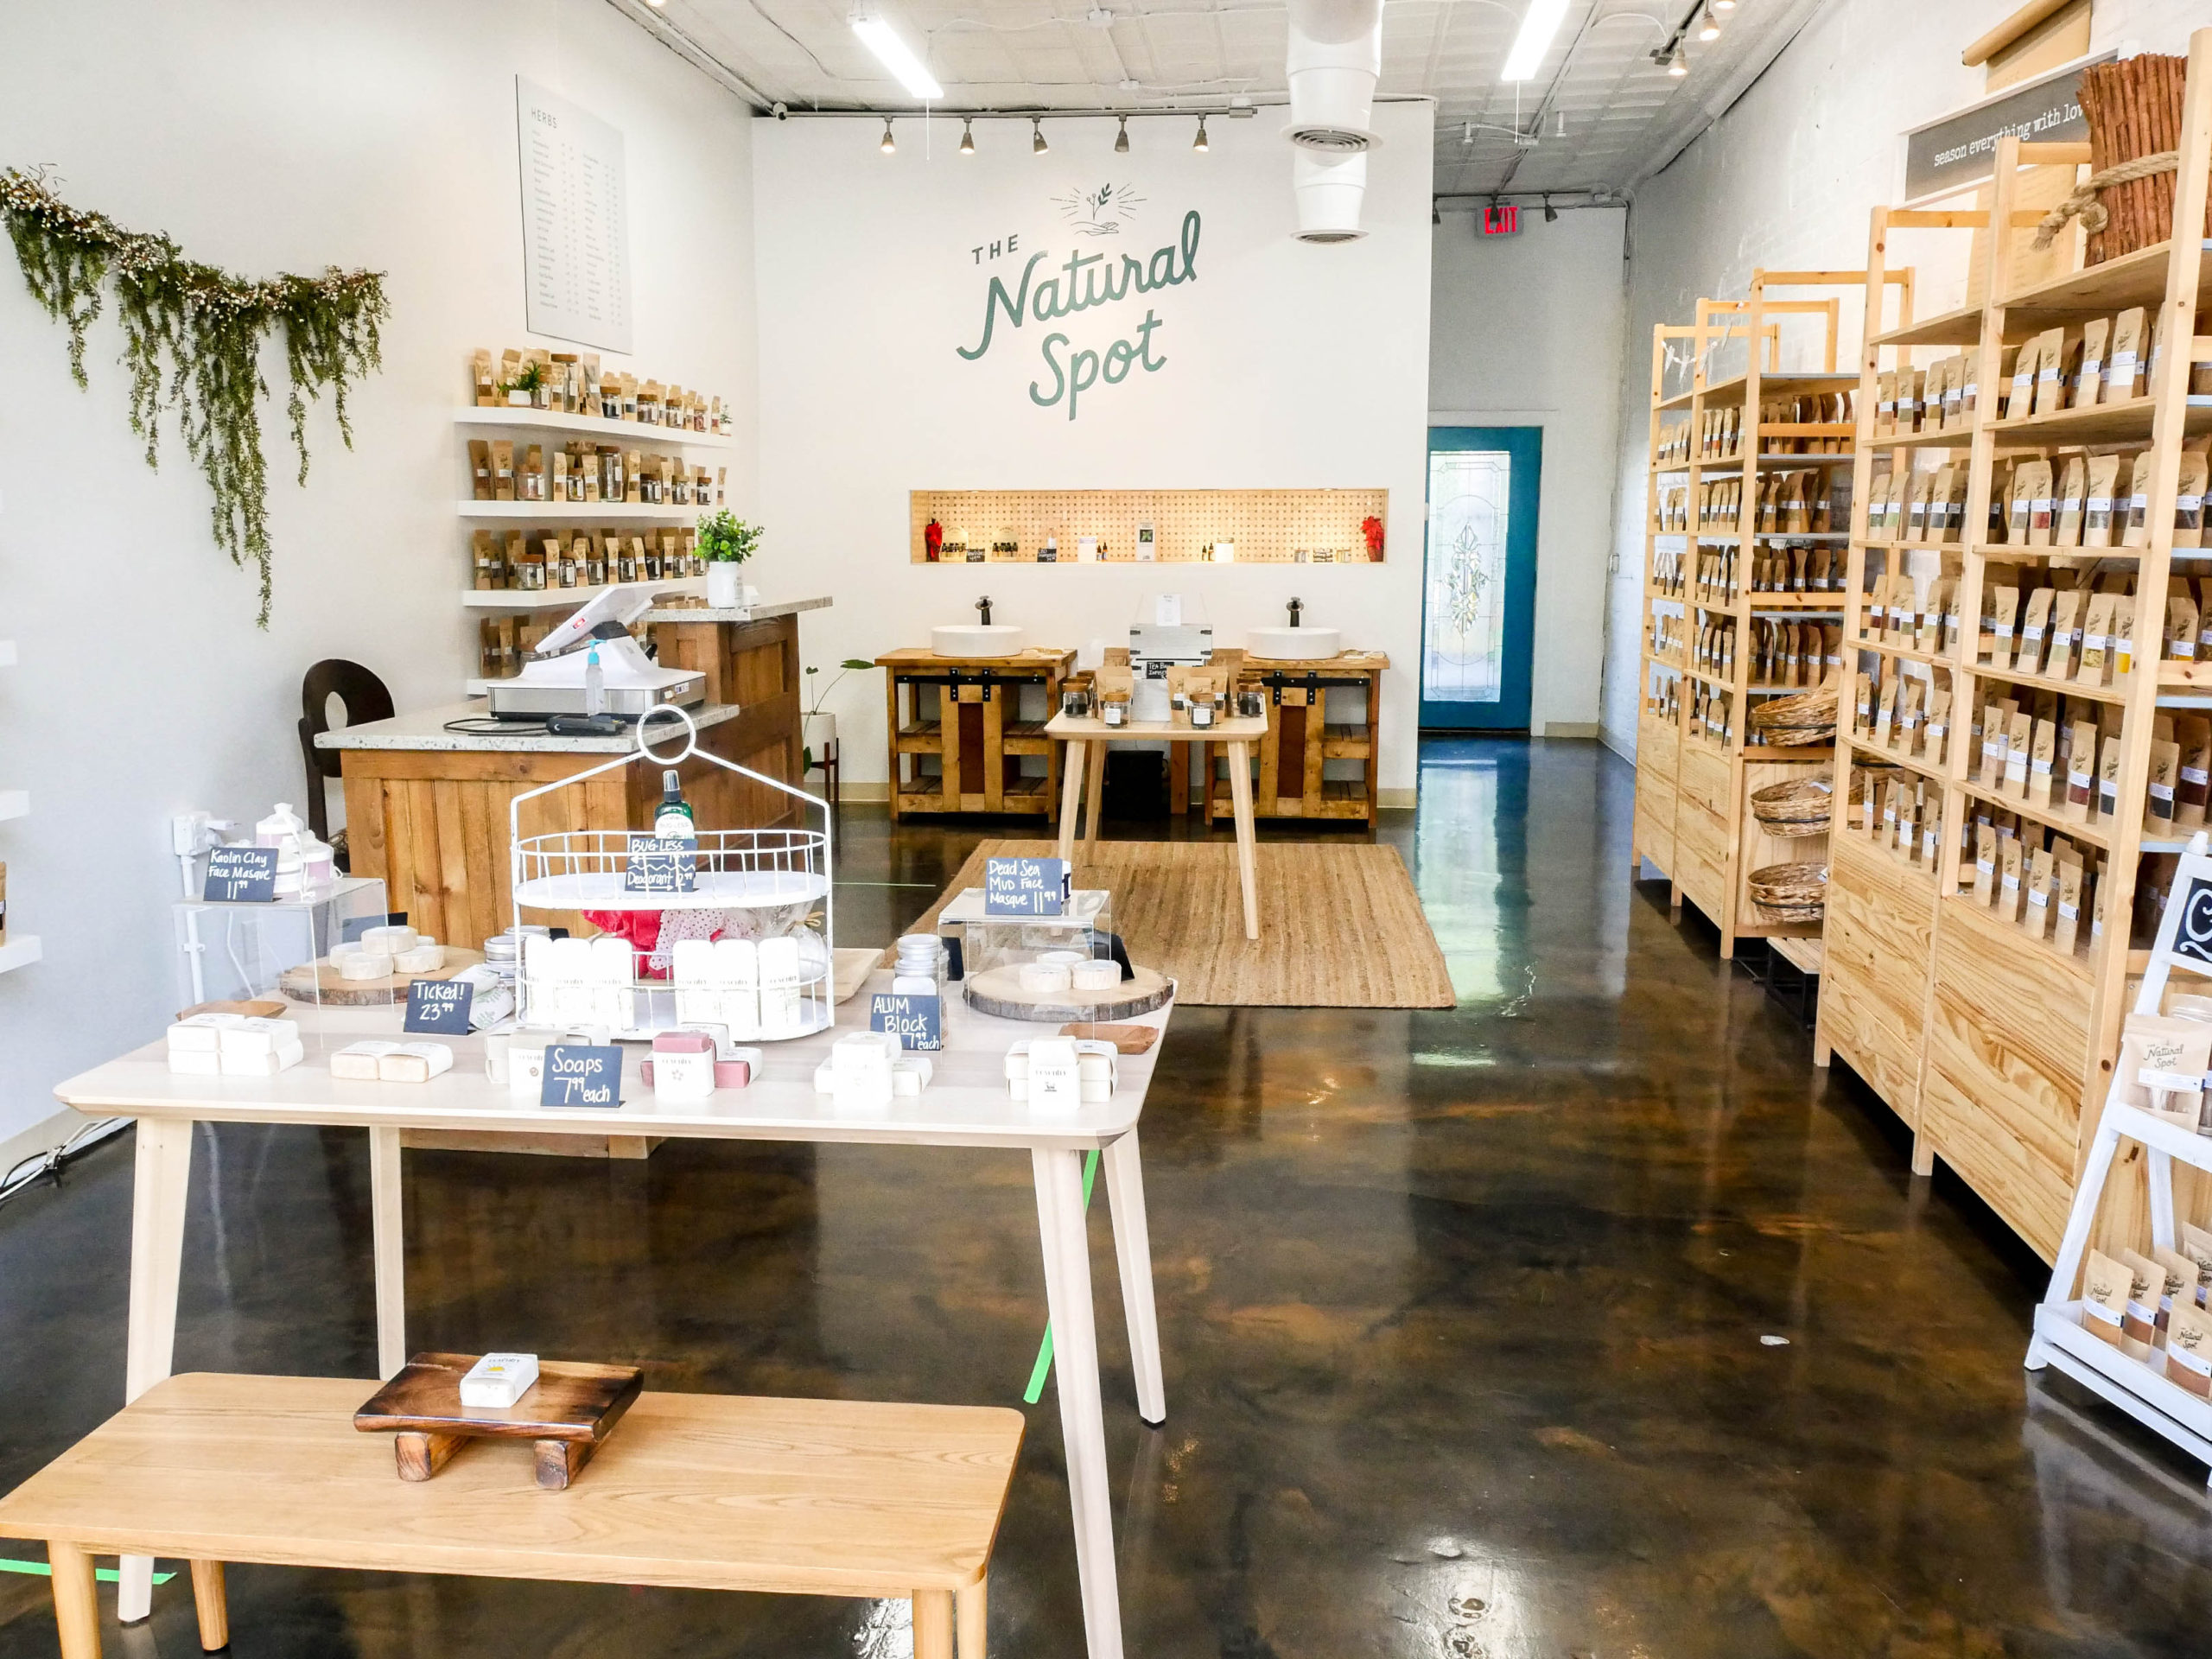 The Natural Spot store interior